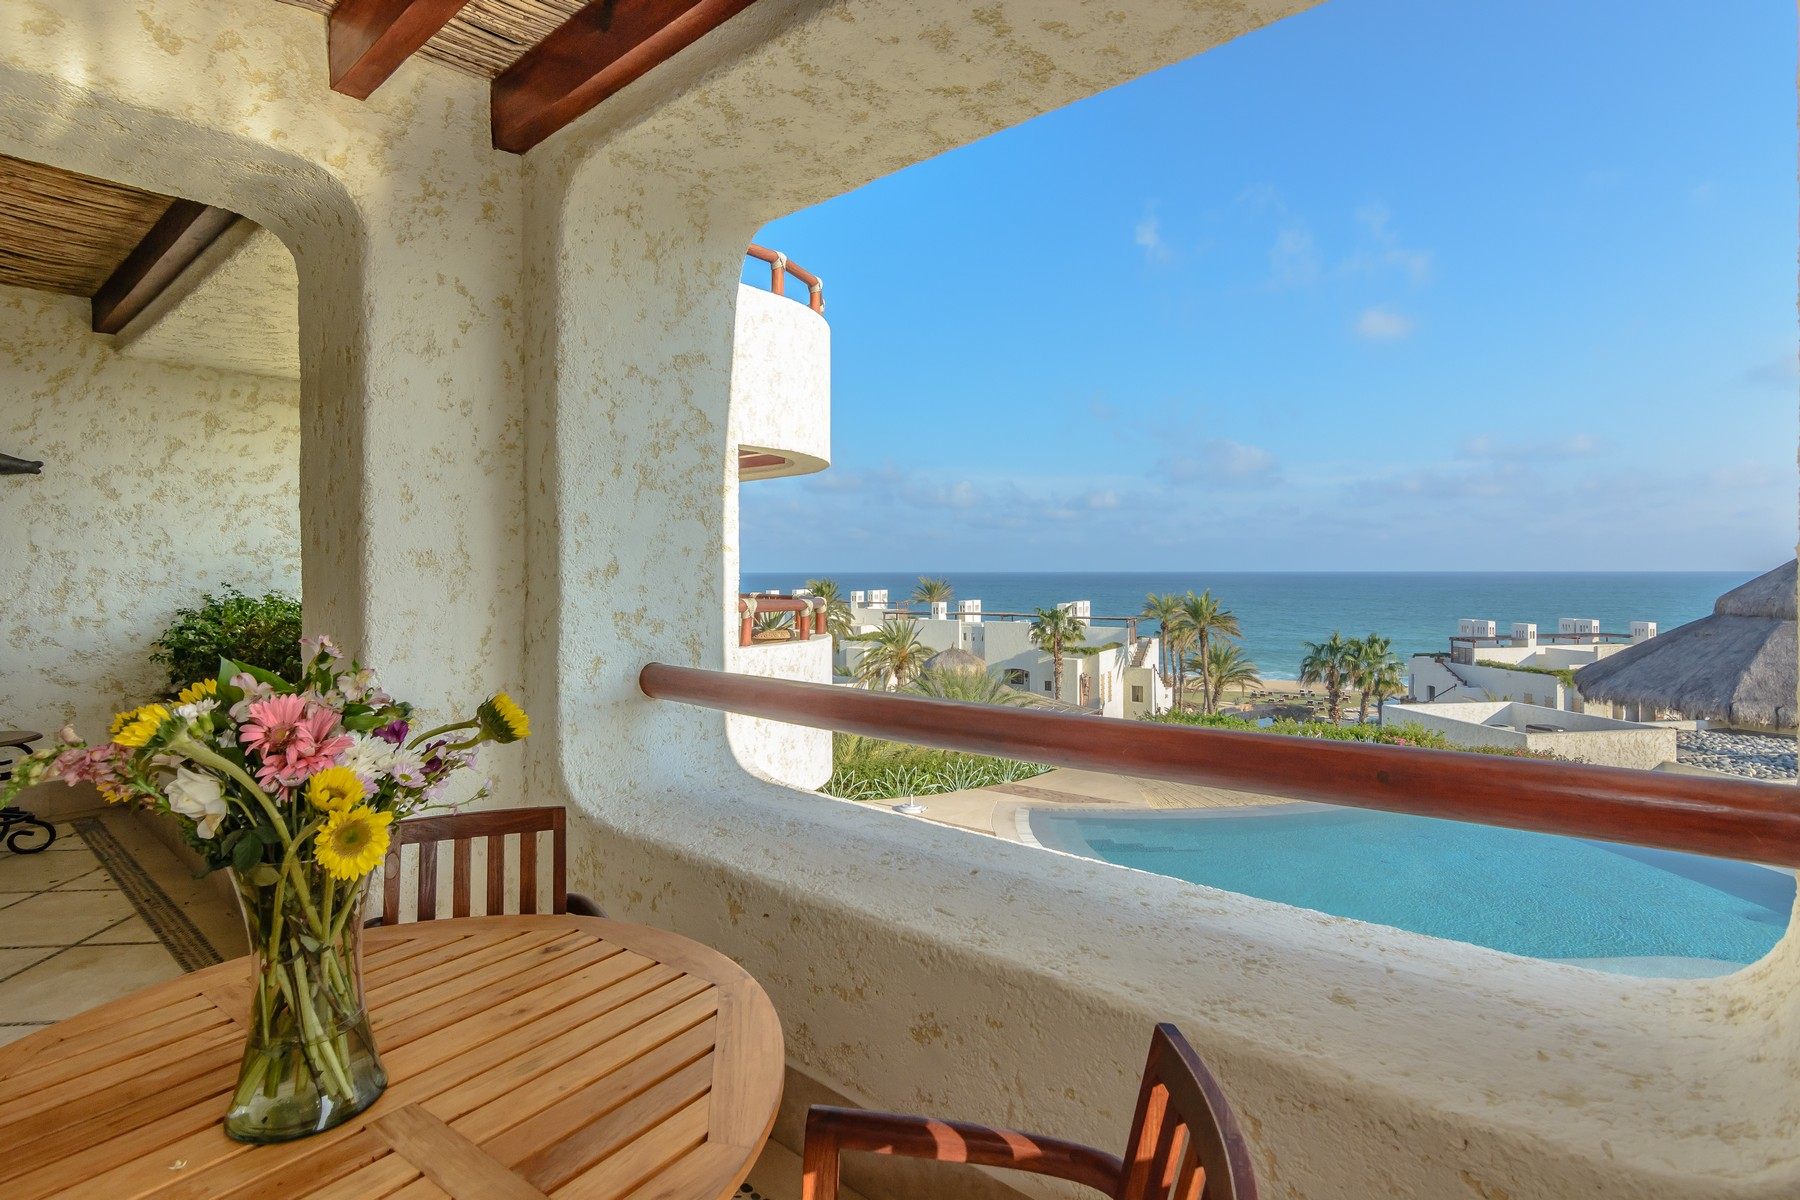 Additional photo for property listing at Residence 4202 Las Ventanas al Paraiso Carretera Transpeninsular MK 19.5 San Jose Del Cabo, Baja California Sur 23400 México